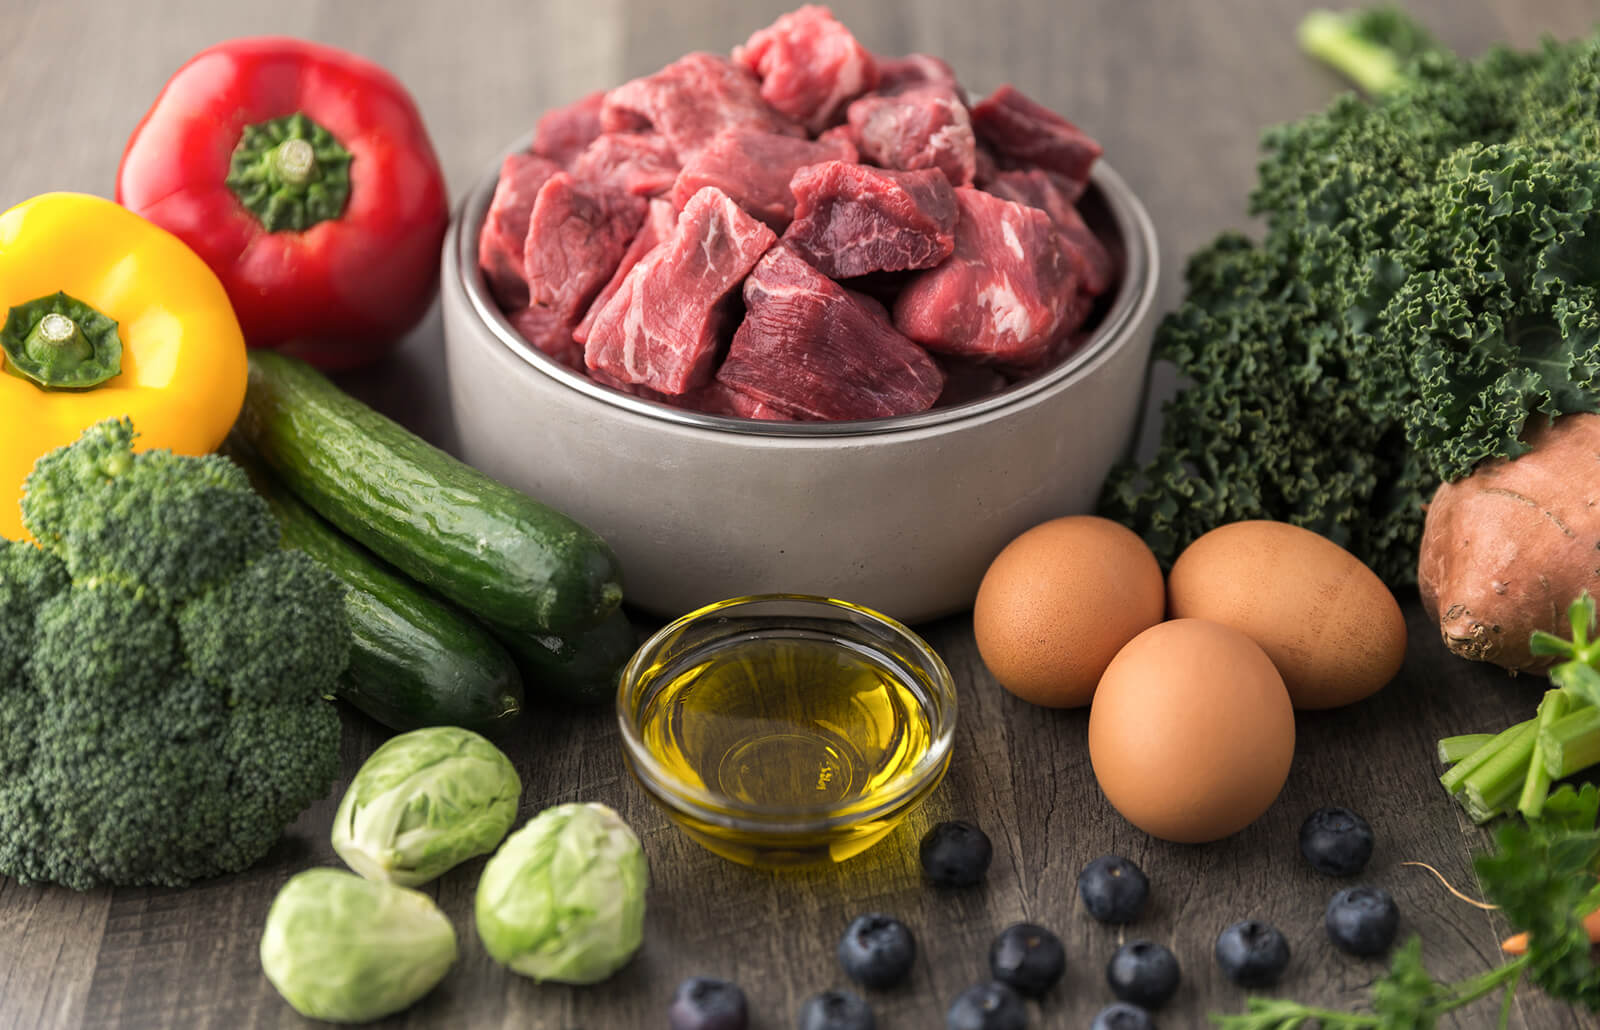 Homemade Raw Dog Food Recipes With Grain-Free Ingredients | LoveToKnow